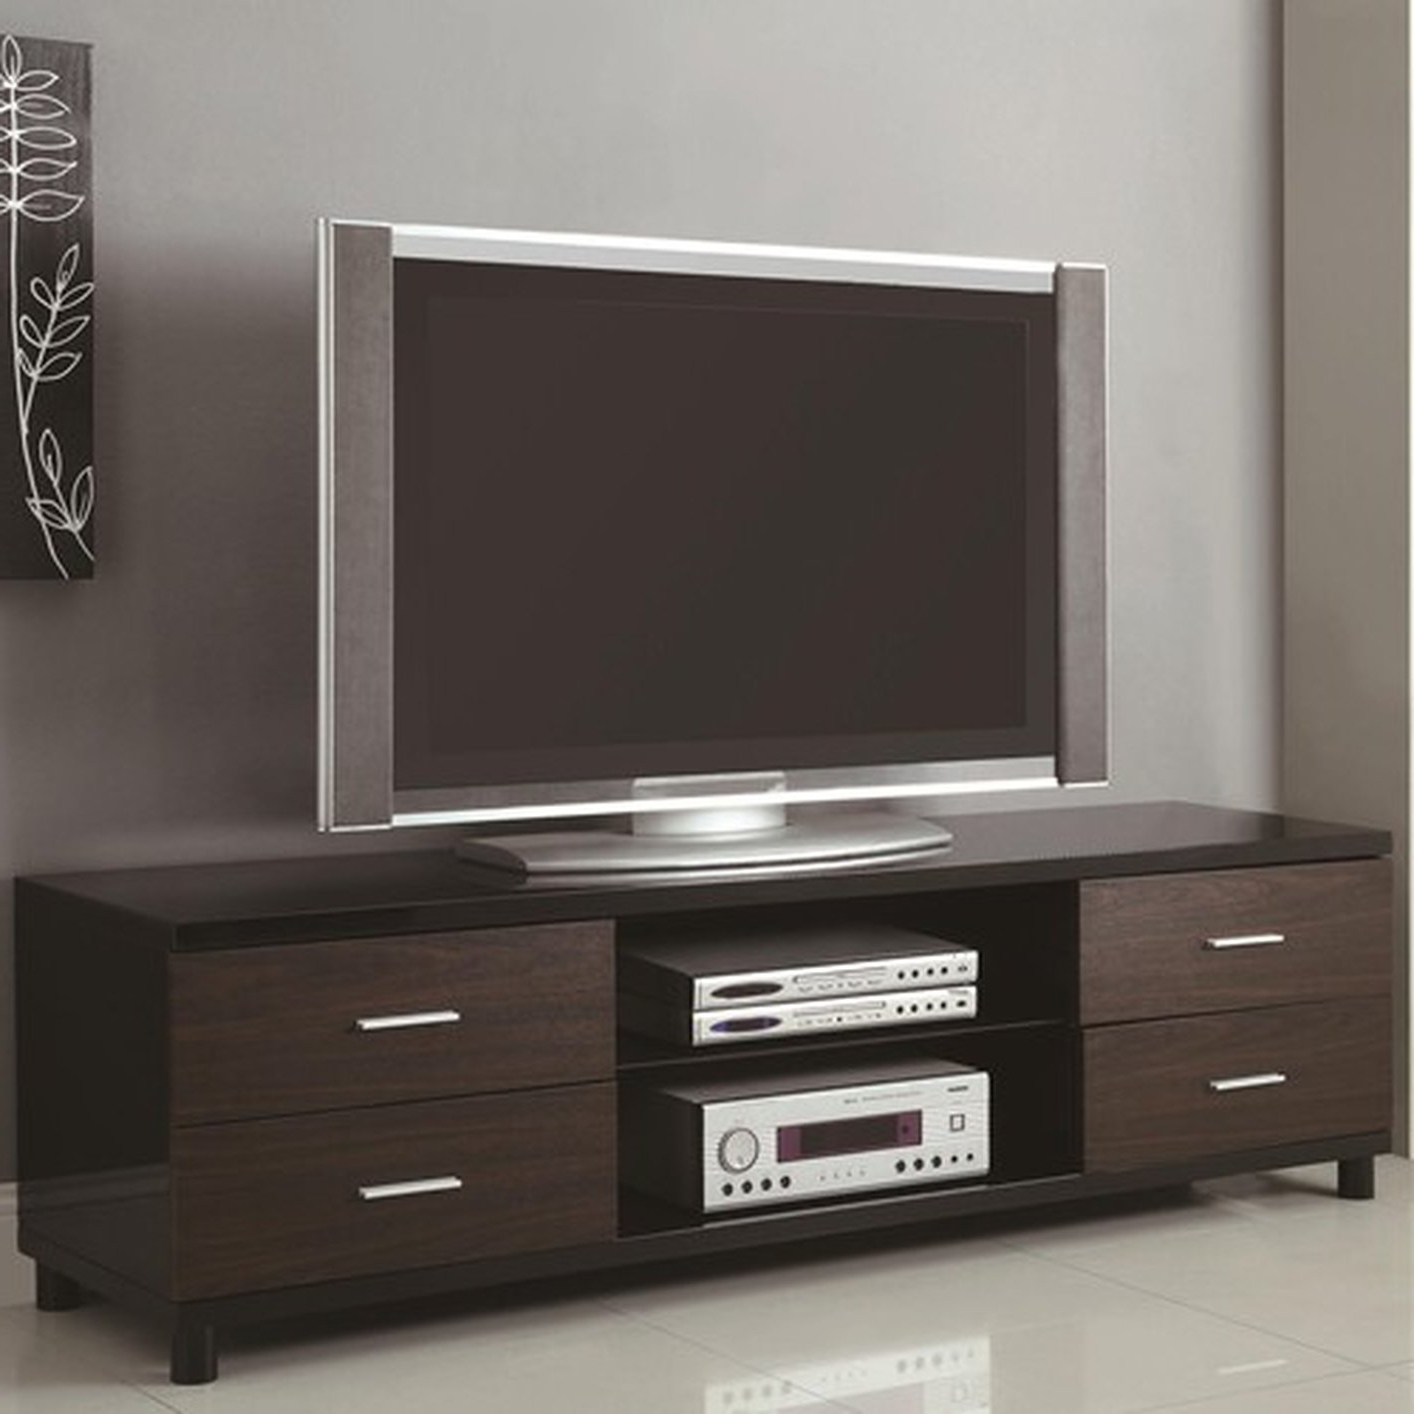 Brown Wood Tv Stand – Steal A Sofa Furniture Outlet Los Angeles Ca Throughout Fashionable Wooden Tv Stands (View 12 of 20)